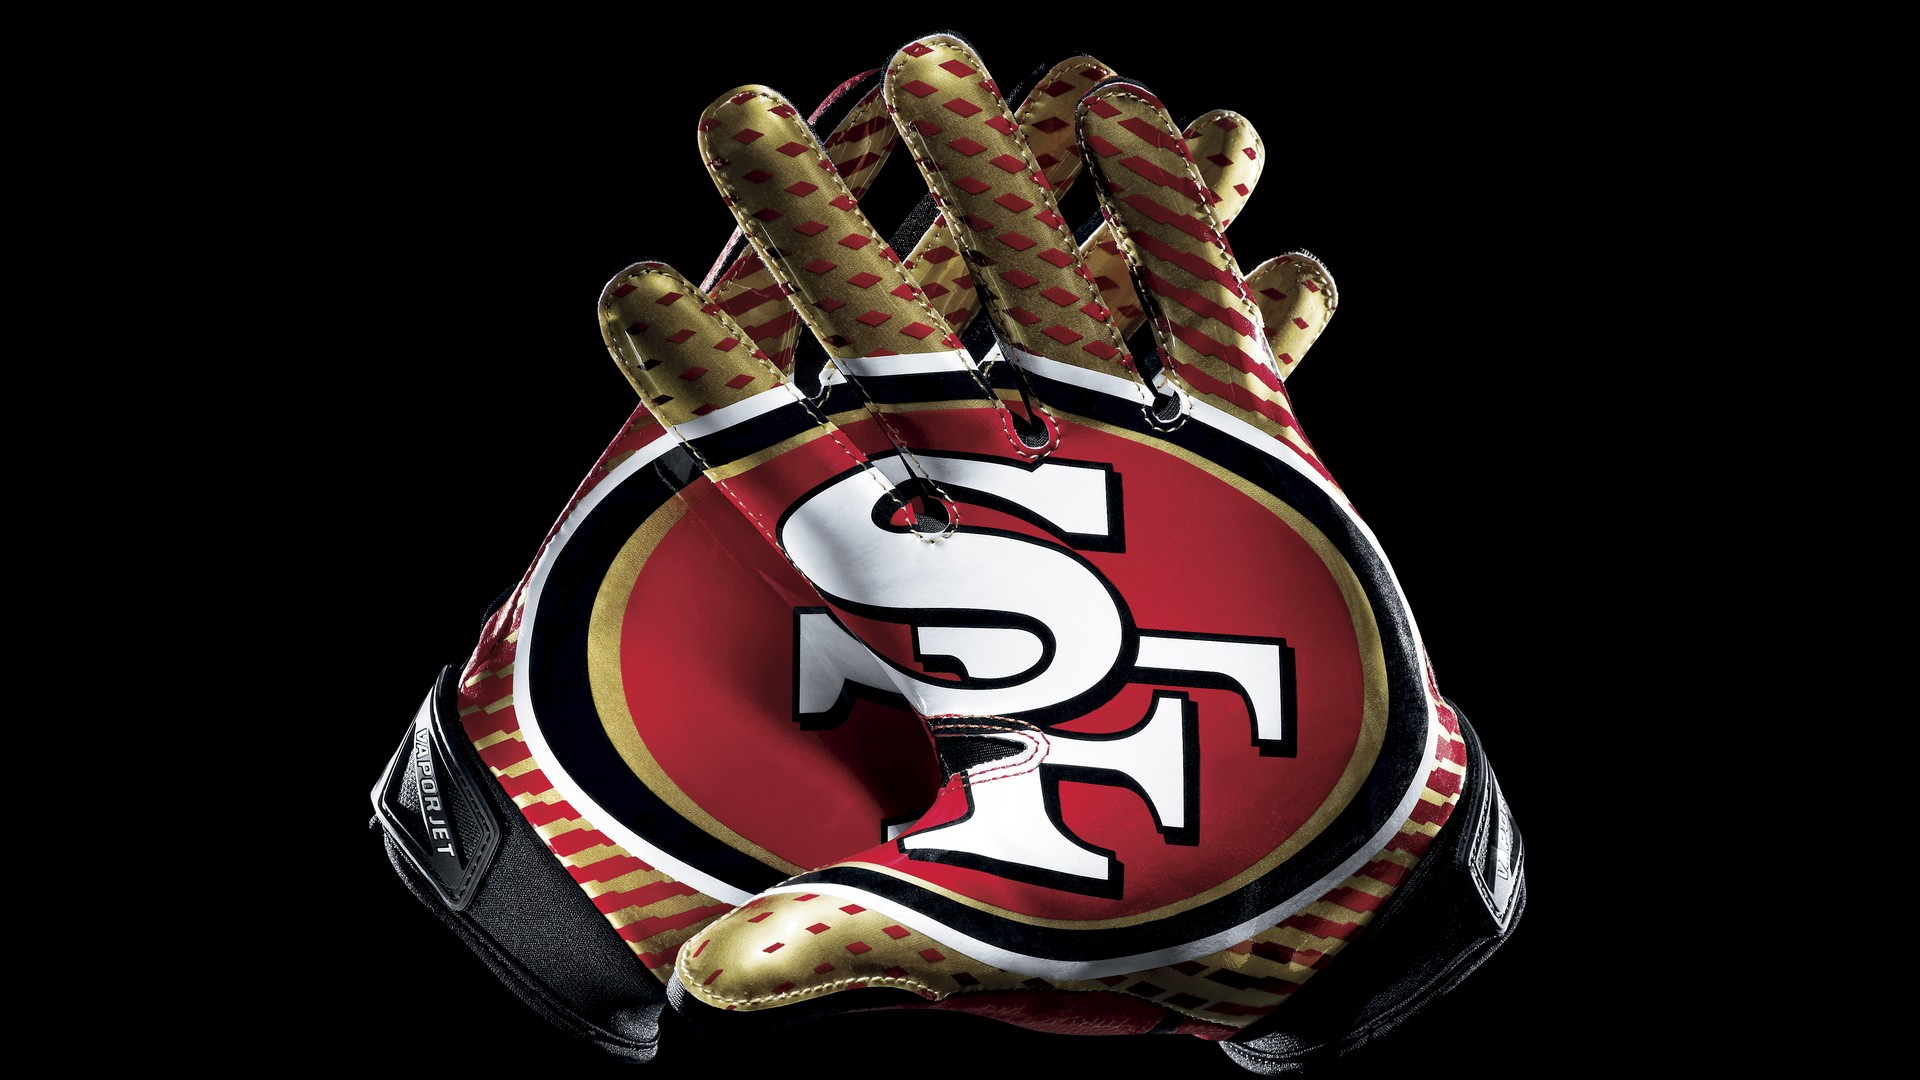 download Wallpapers San Francisco 49ers 2020 NFL Football 1920x1080